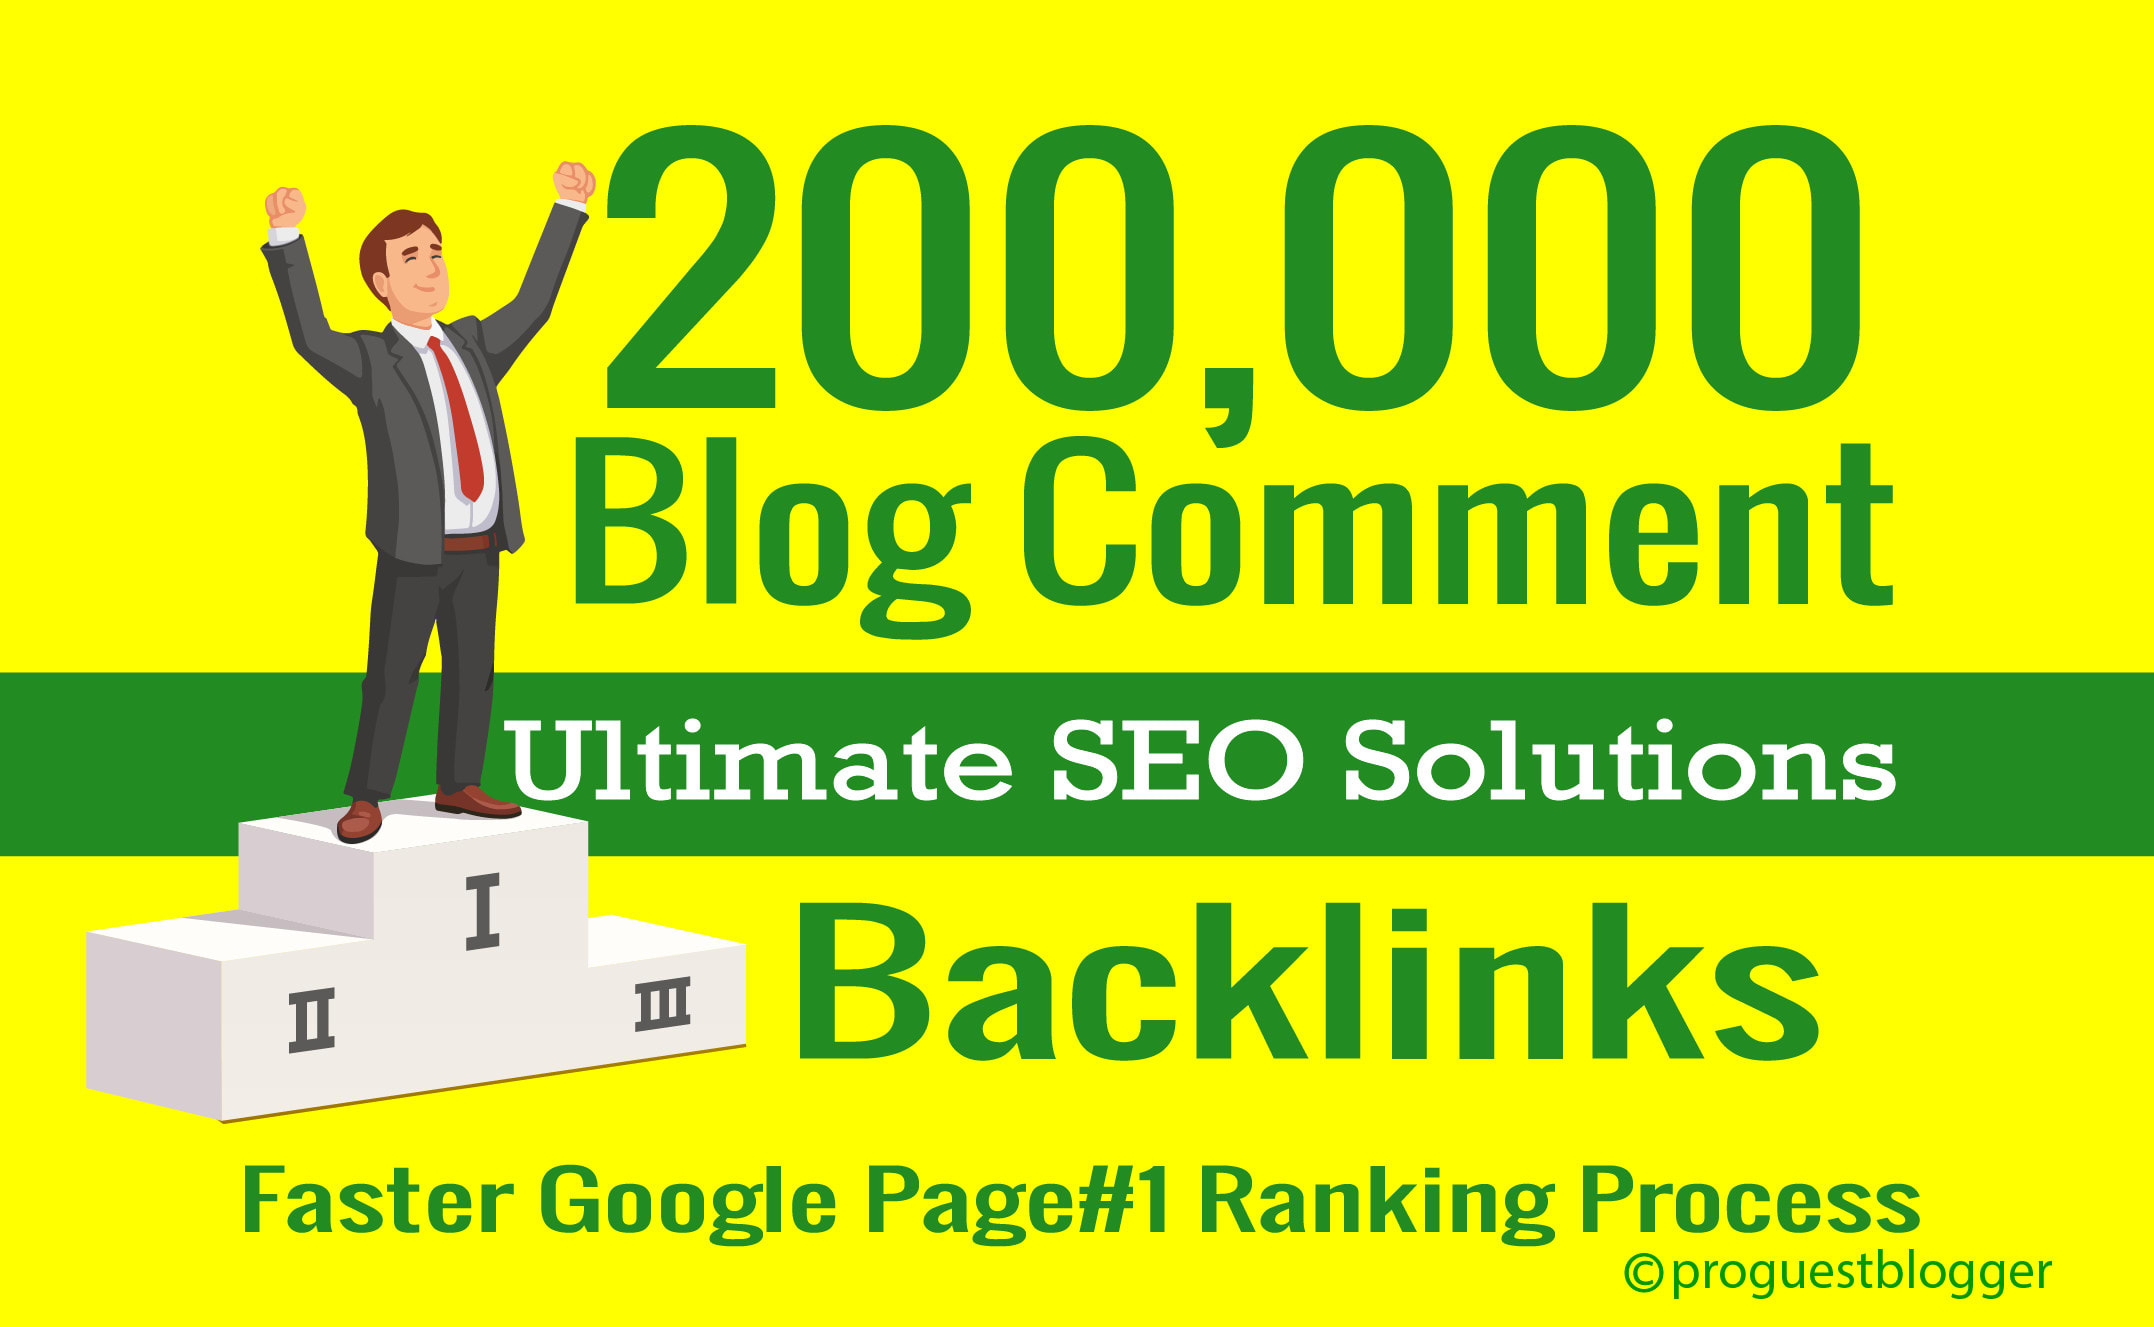 I'll create 20,000 GSA Blog Comments Backlinks for Google Ranking